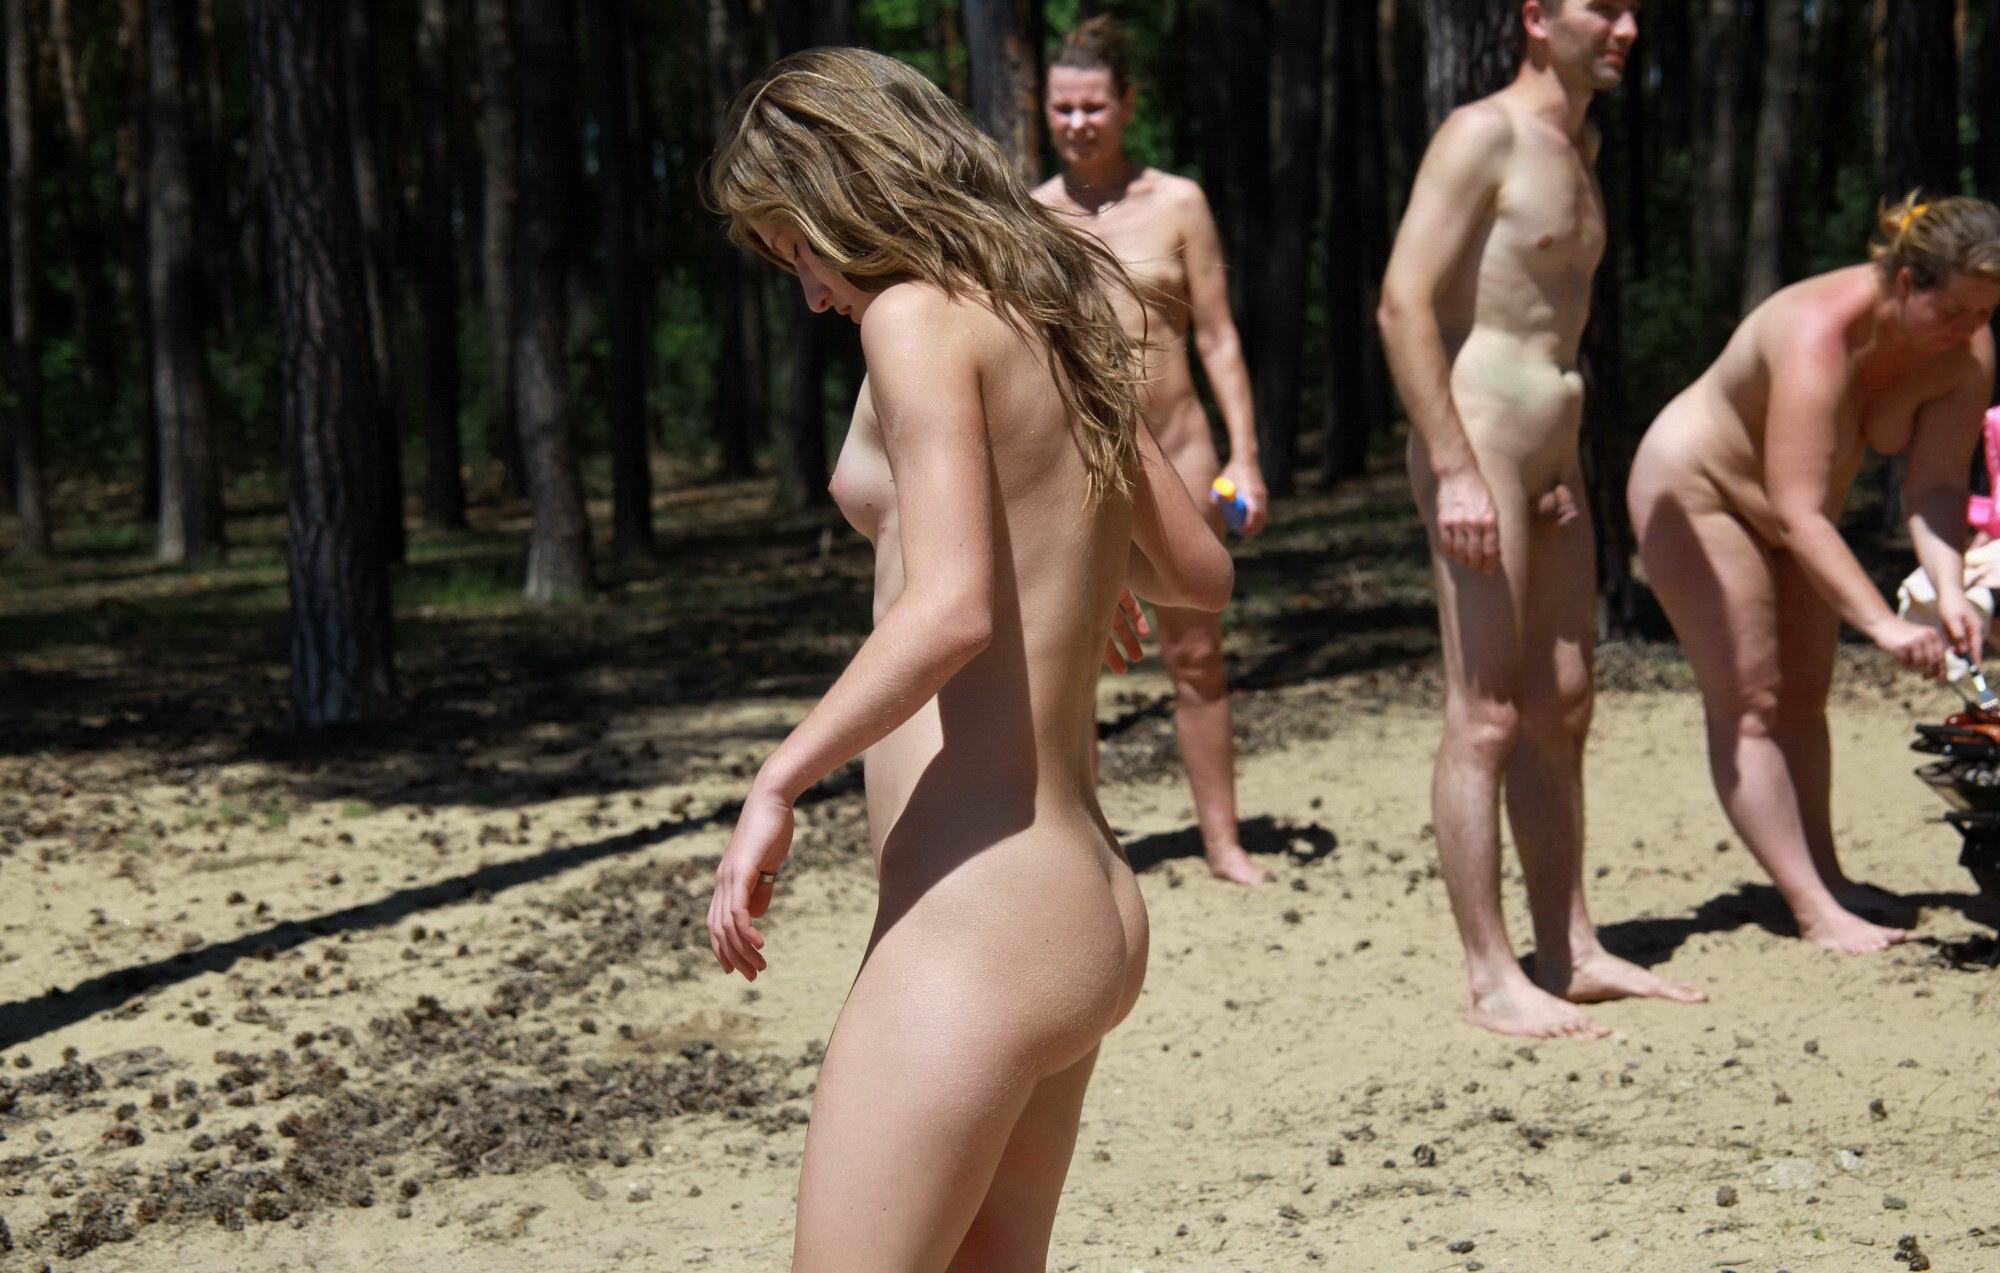 Too good australian nudist beaches video lady, thick